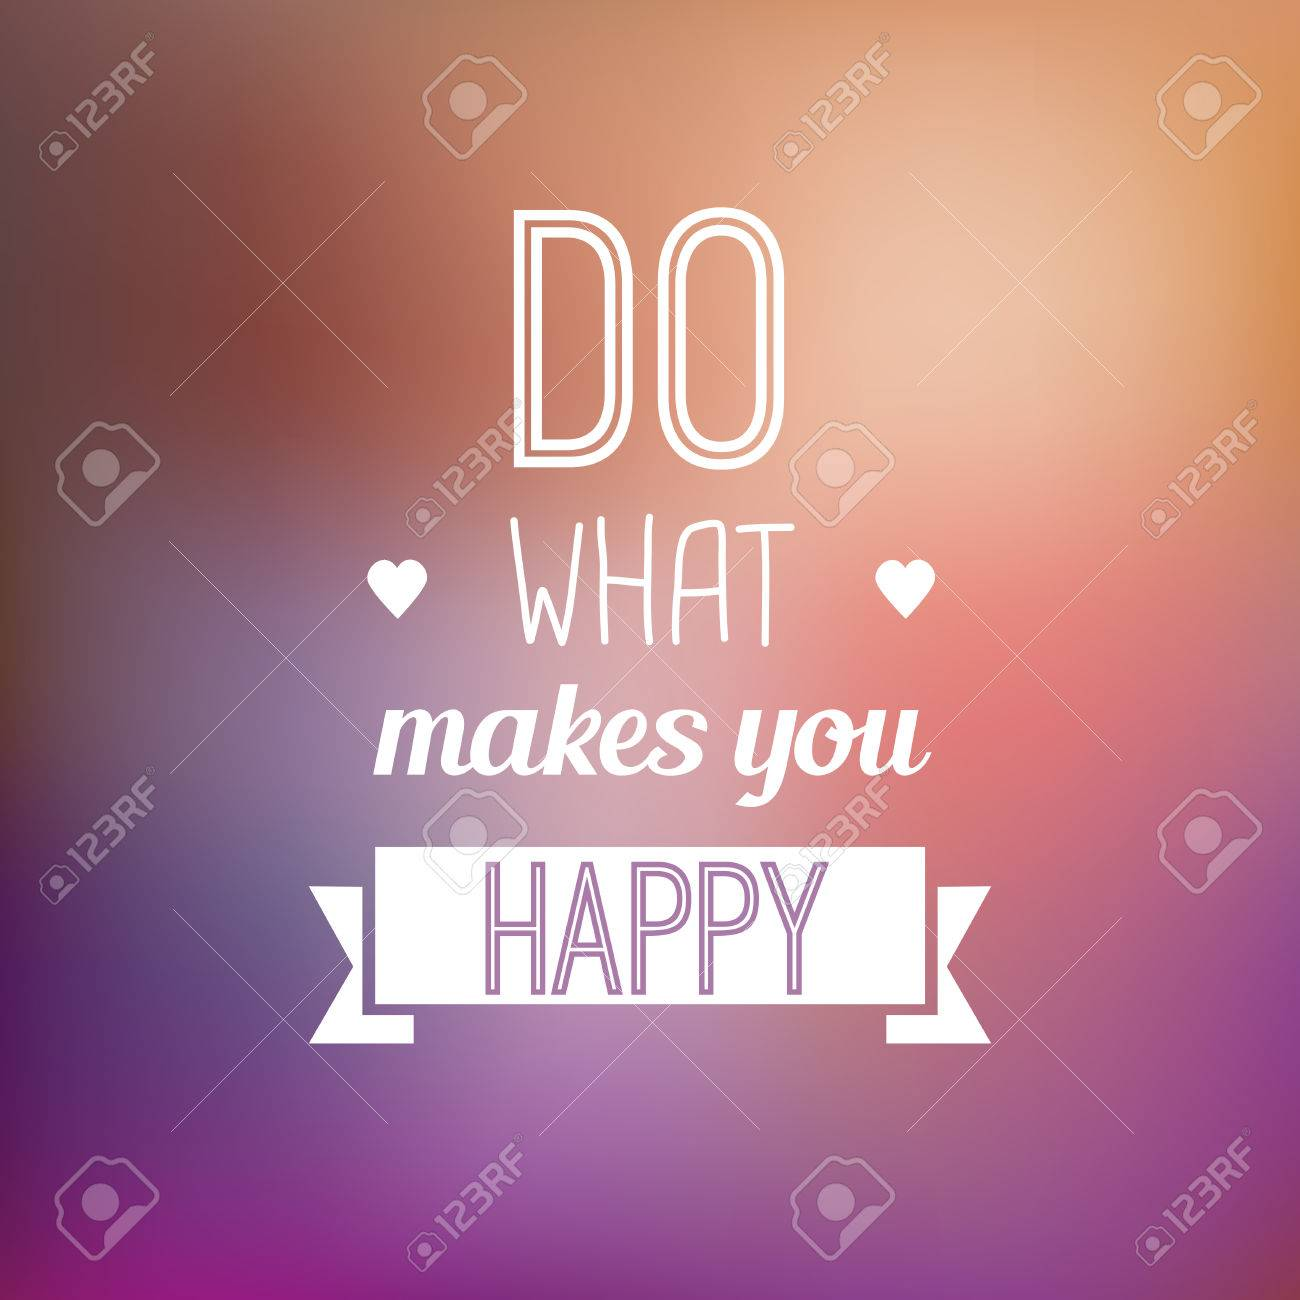 do what makes you happy motivational typo quote on a blurred